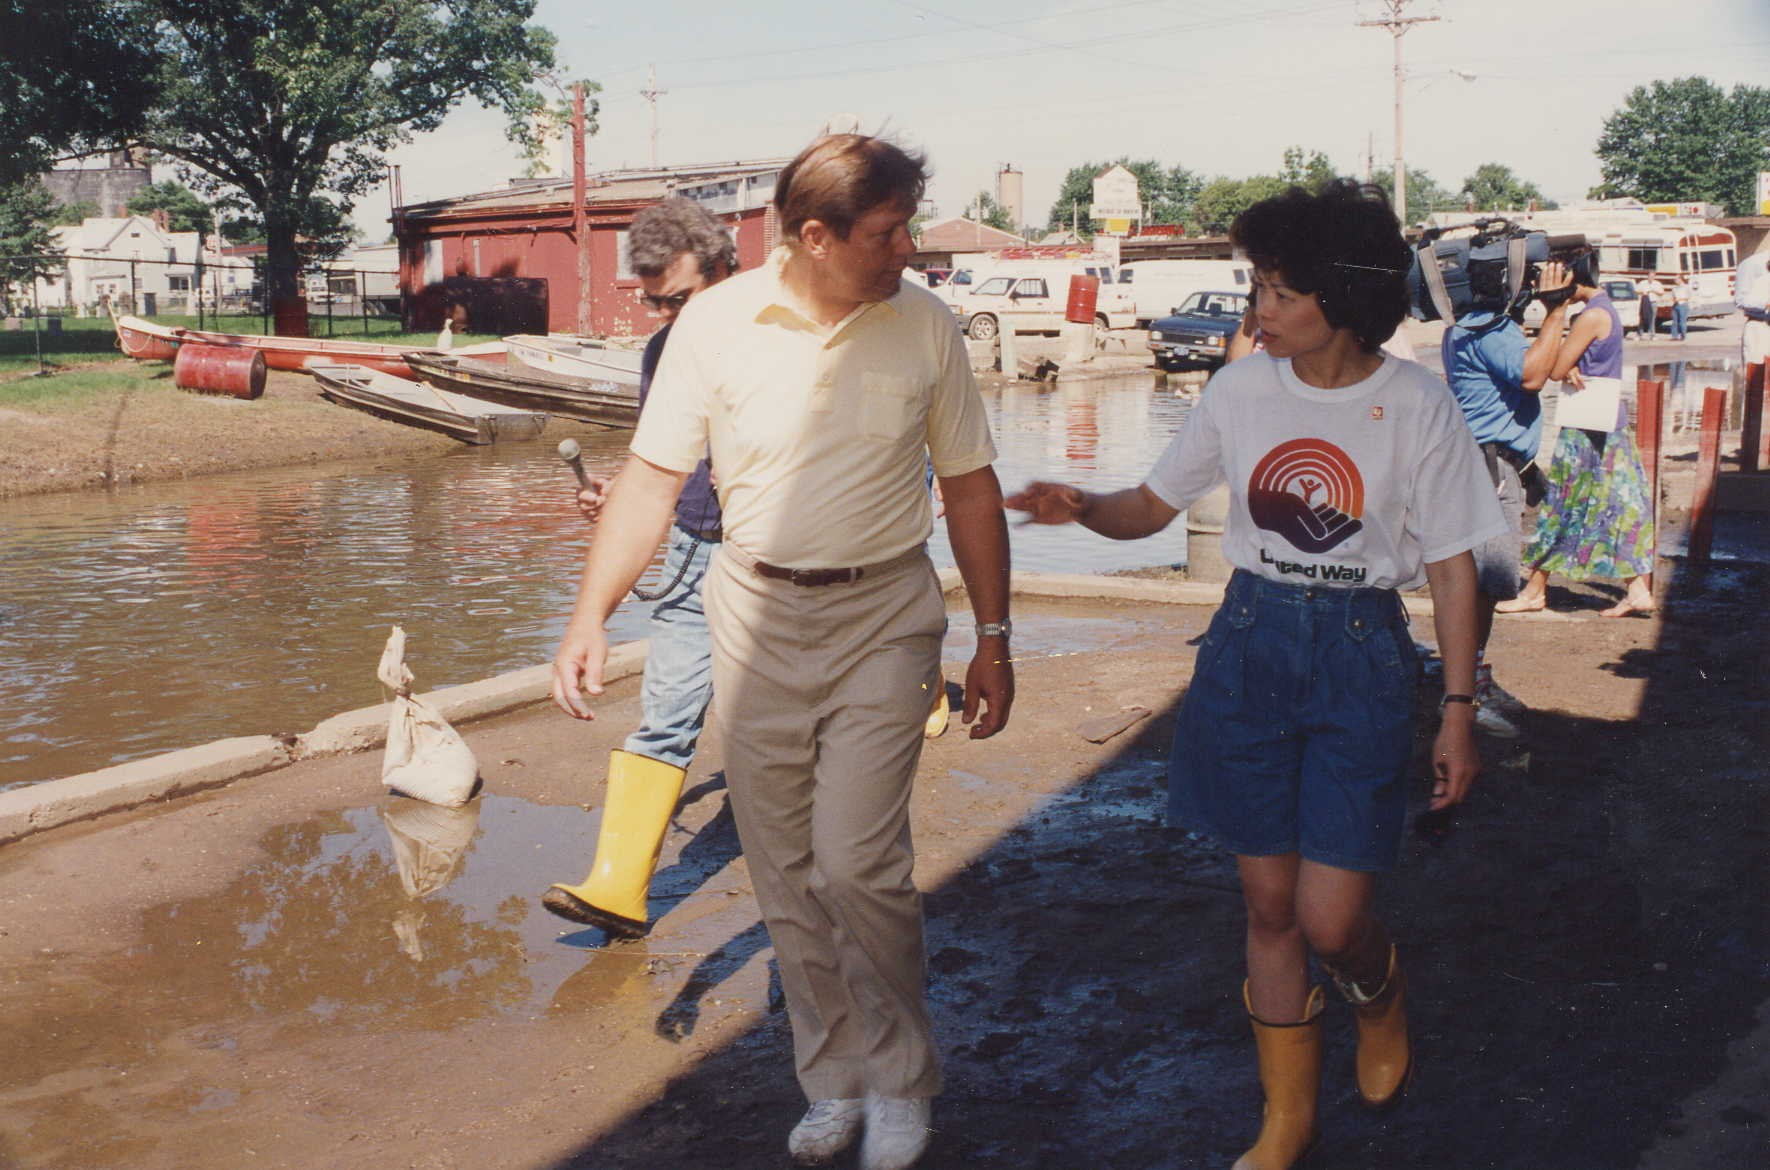 United Way of America President & CEO Elaine Chao talking with a local official during a tour to a flooded region in the Midwest.